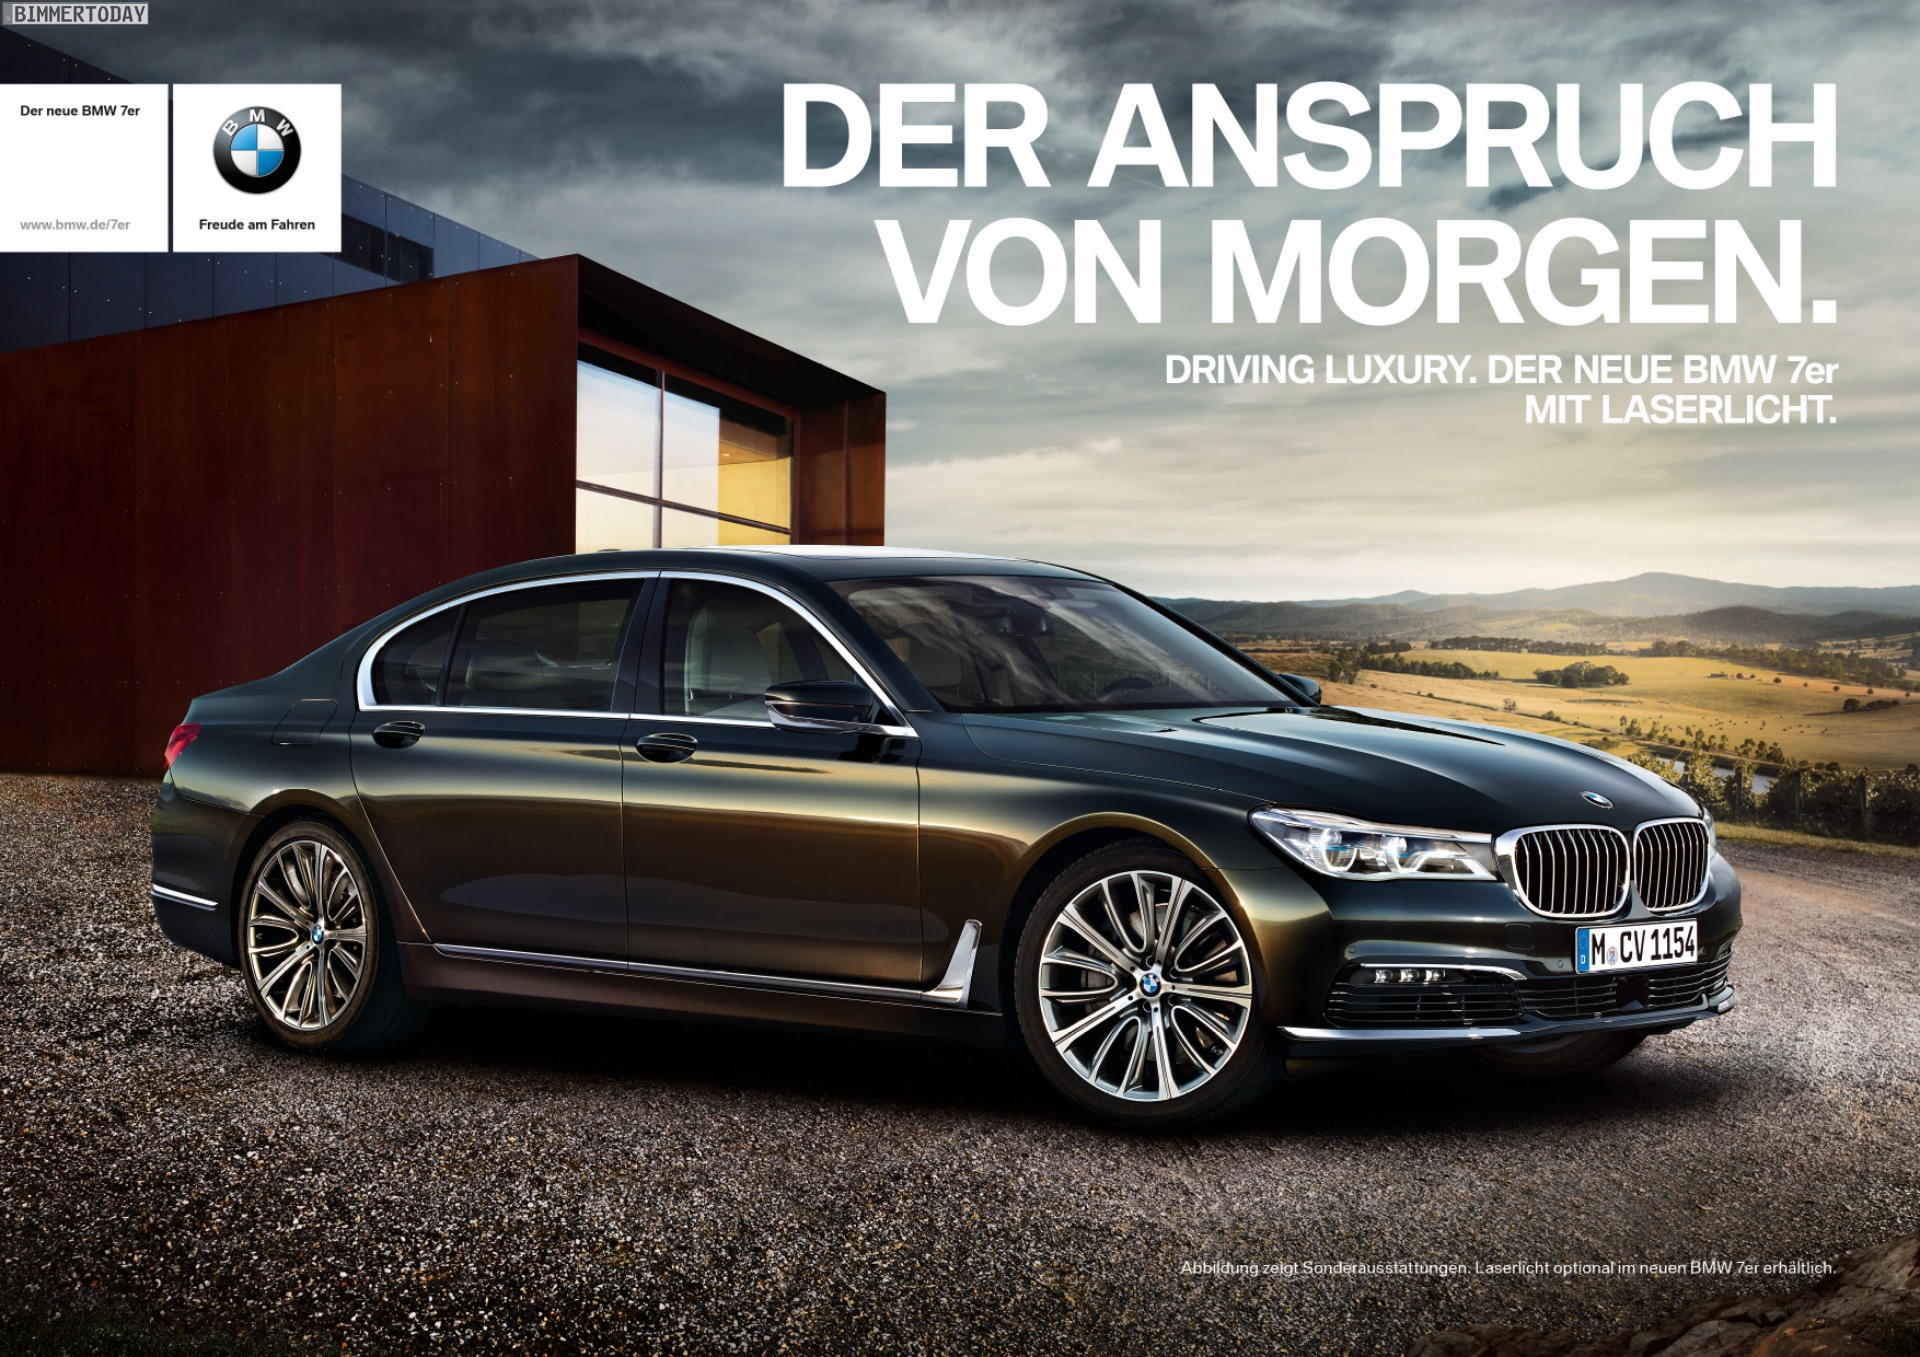 der anspruch von morgen bmw 7er werbung f r tv und print. Black Bedroom Furniture Sets. Home Design Ideas